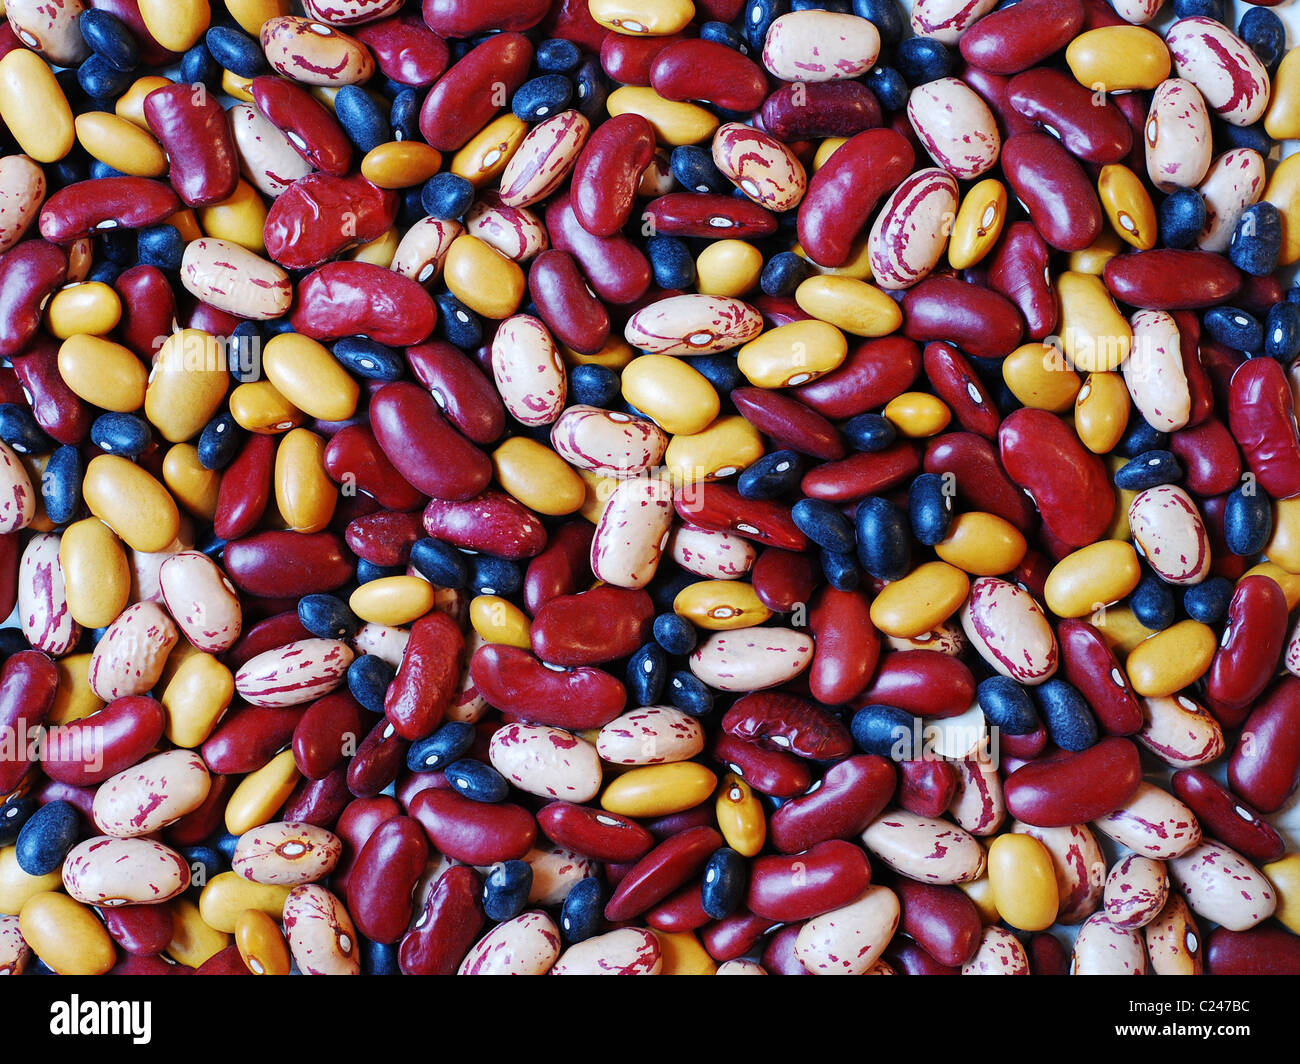 Mixture of different type of colorful beans - Stock Image